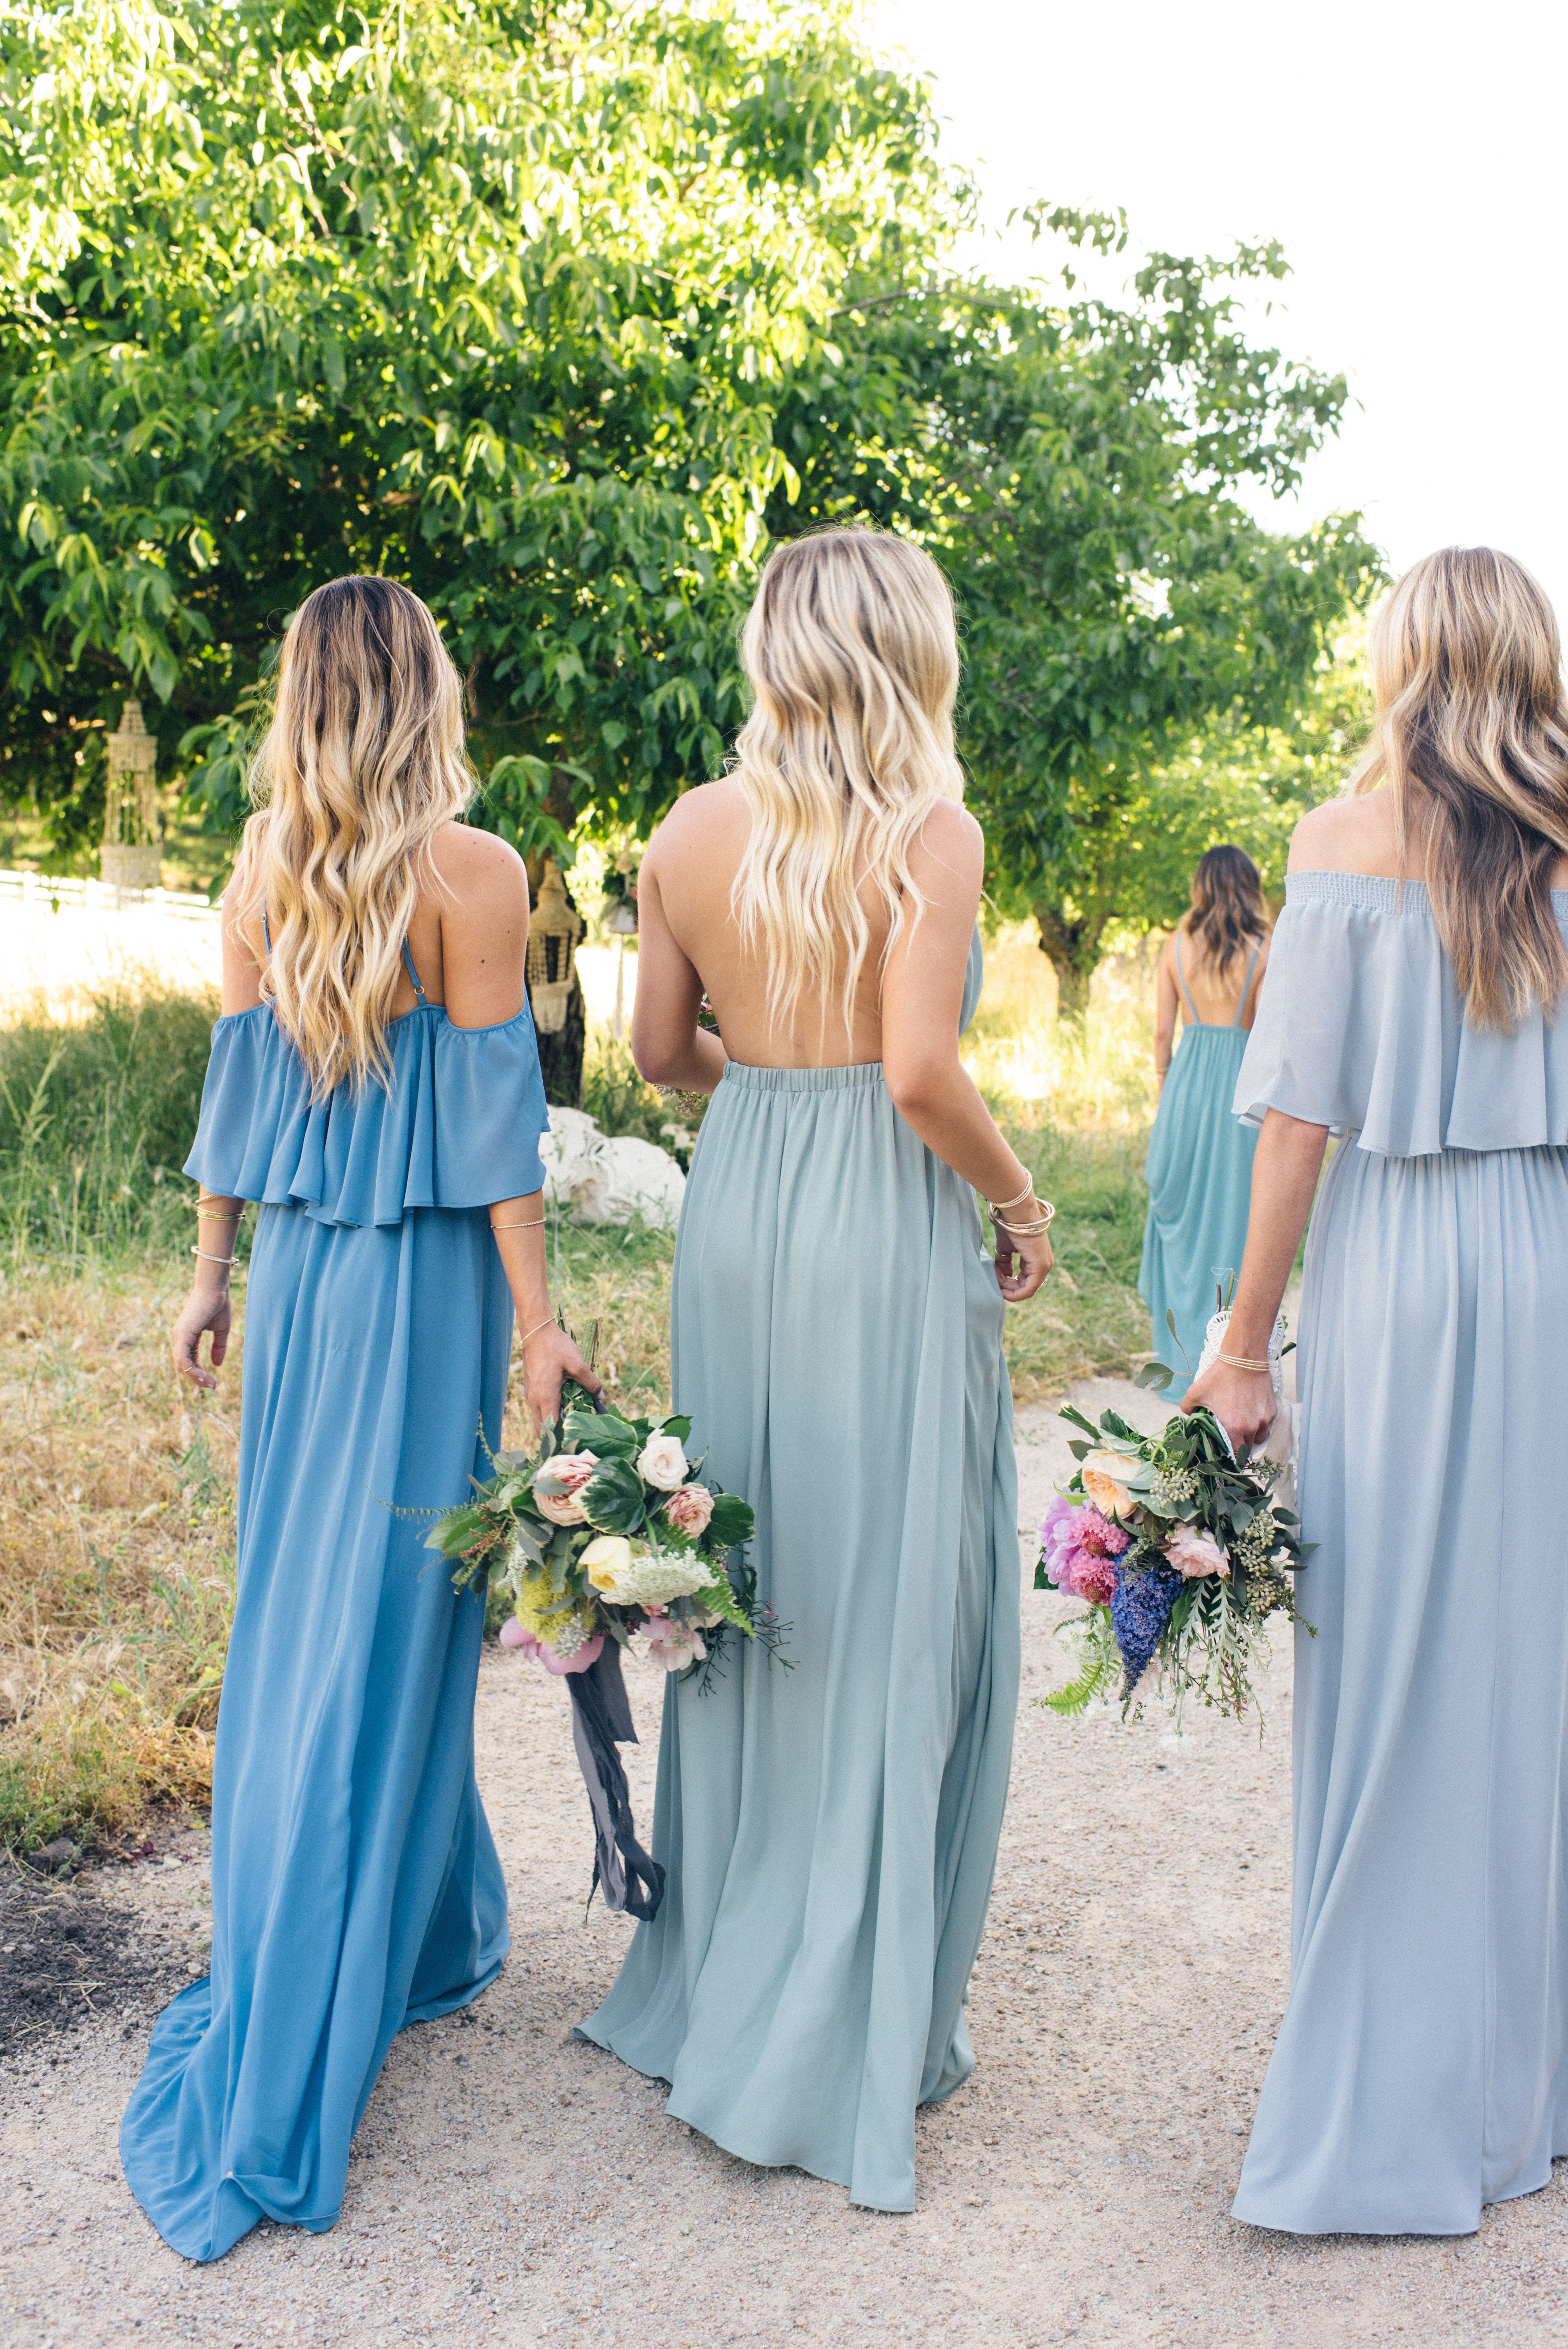 Show Me Your Mumu | Mumu Weddings | :: LOOKBOOKS :: | Pinterest ...